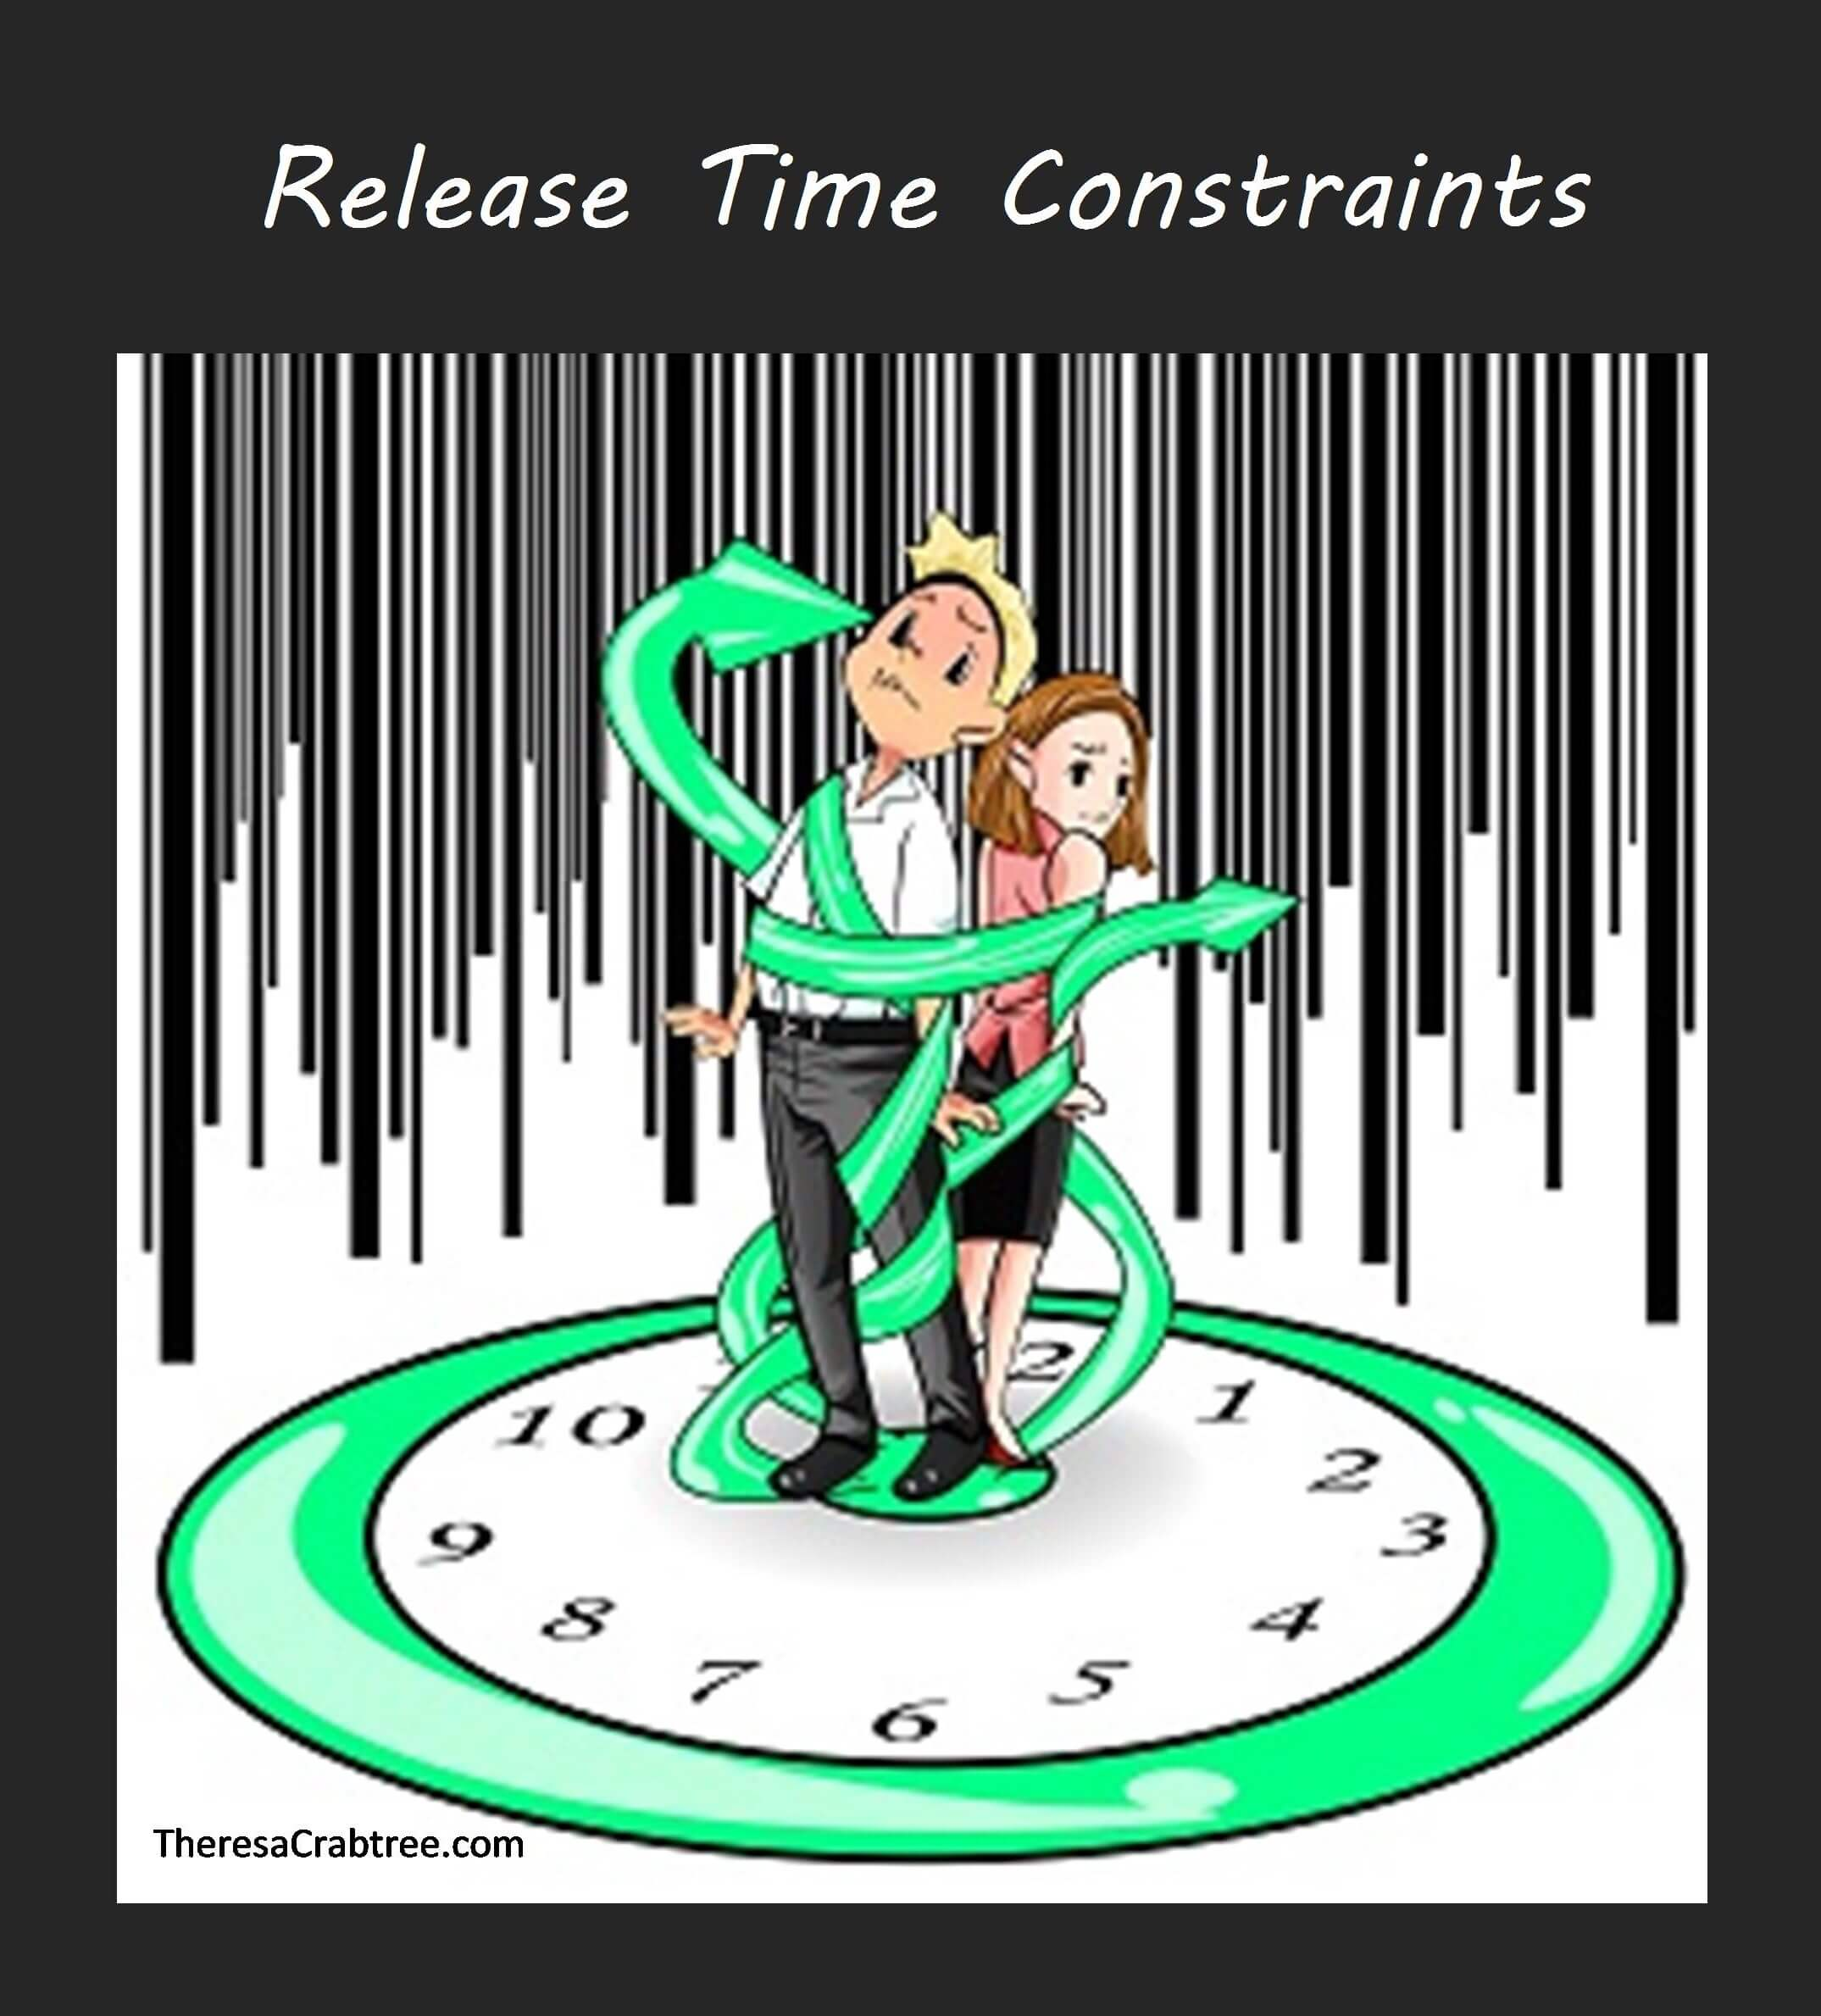 Release Time Constraints